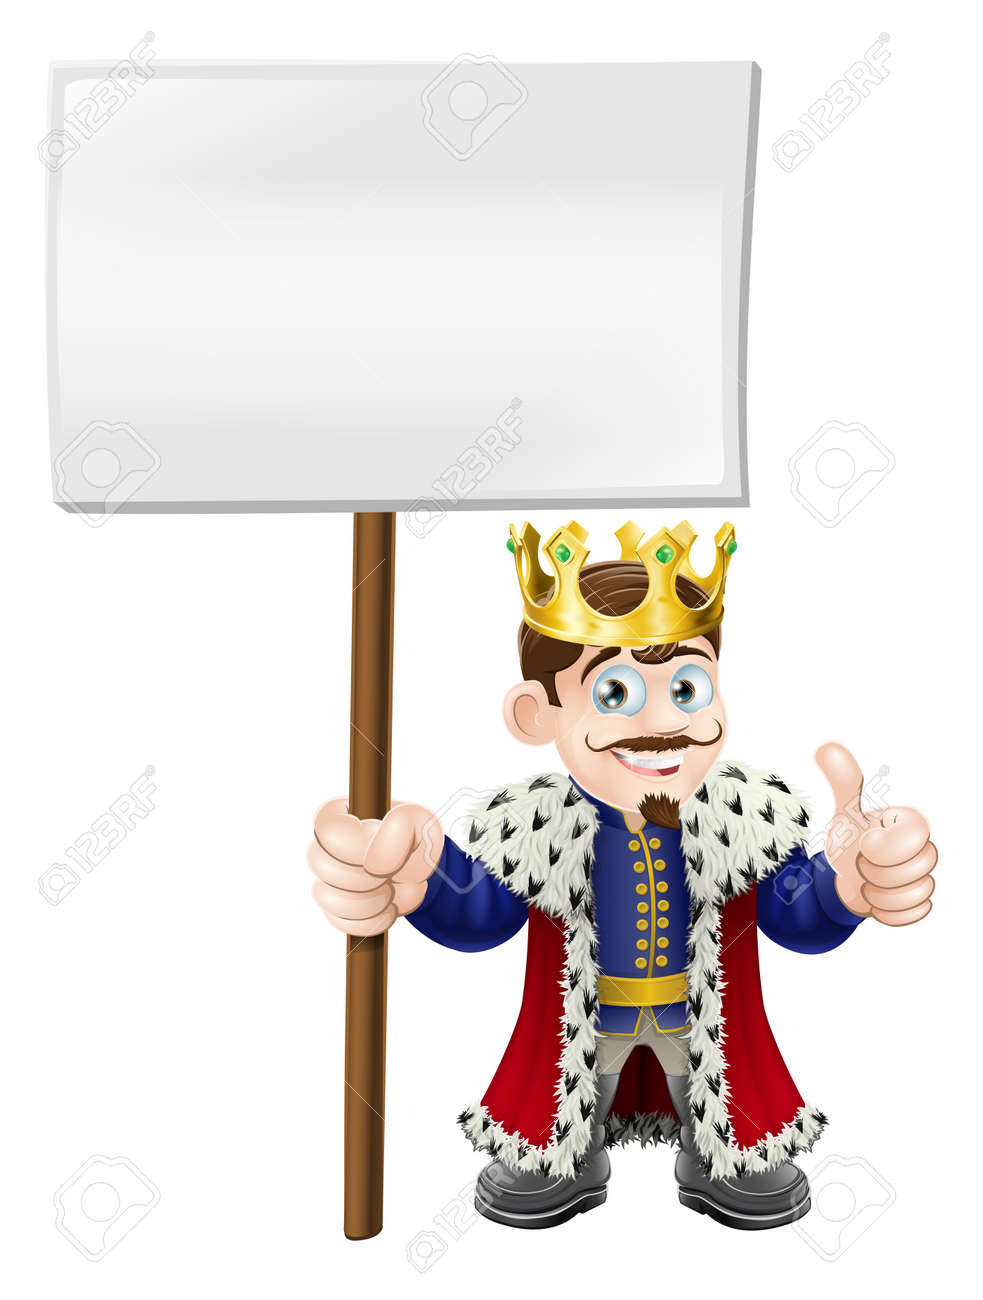 A smiling happy king giving a thumbs up and holding up a sign Stock Vector - 14366701